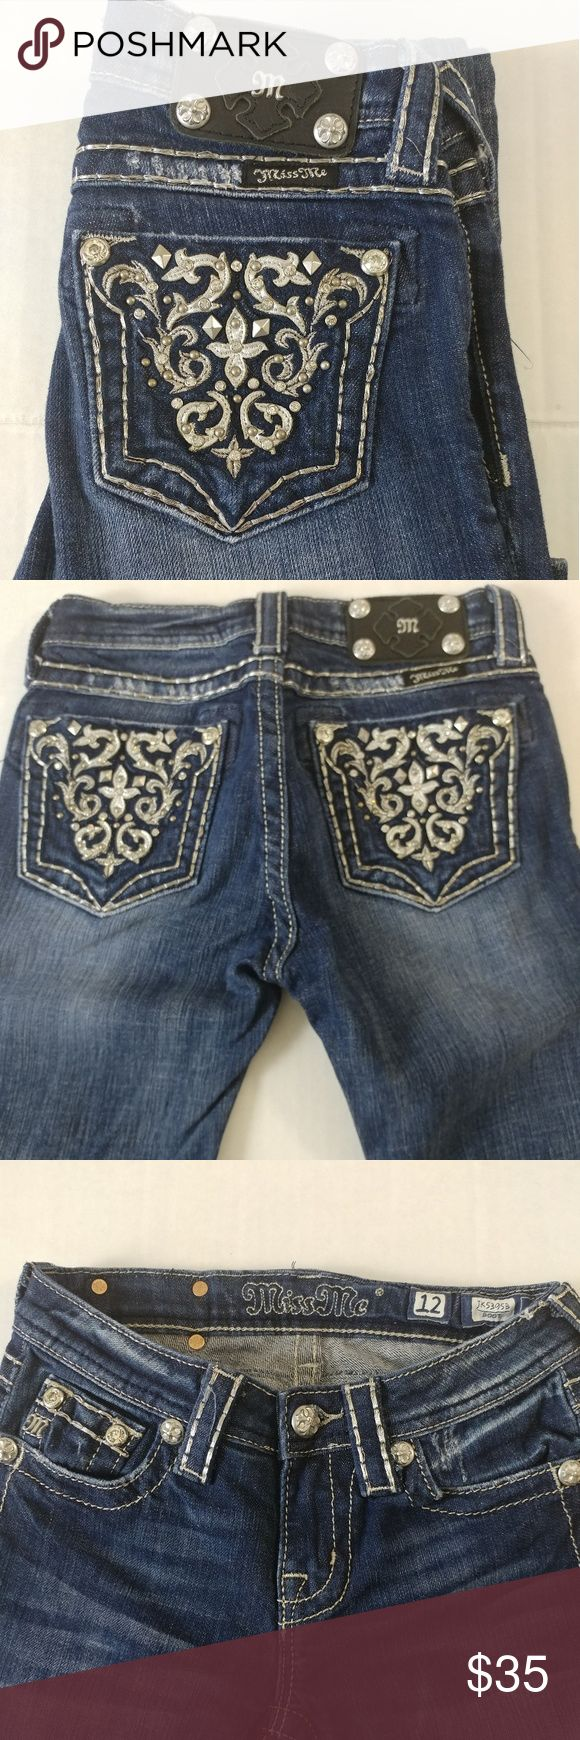 Miss Me Boot Cut Jeans Girls Sz 12 Nice bling preowned jeans! I ship same or next day fast!! Miss Me Bottoms Jeans